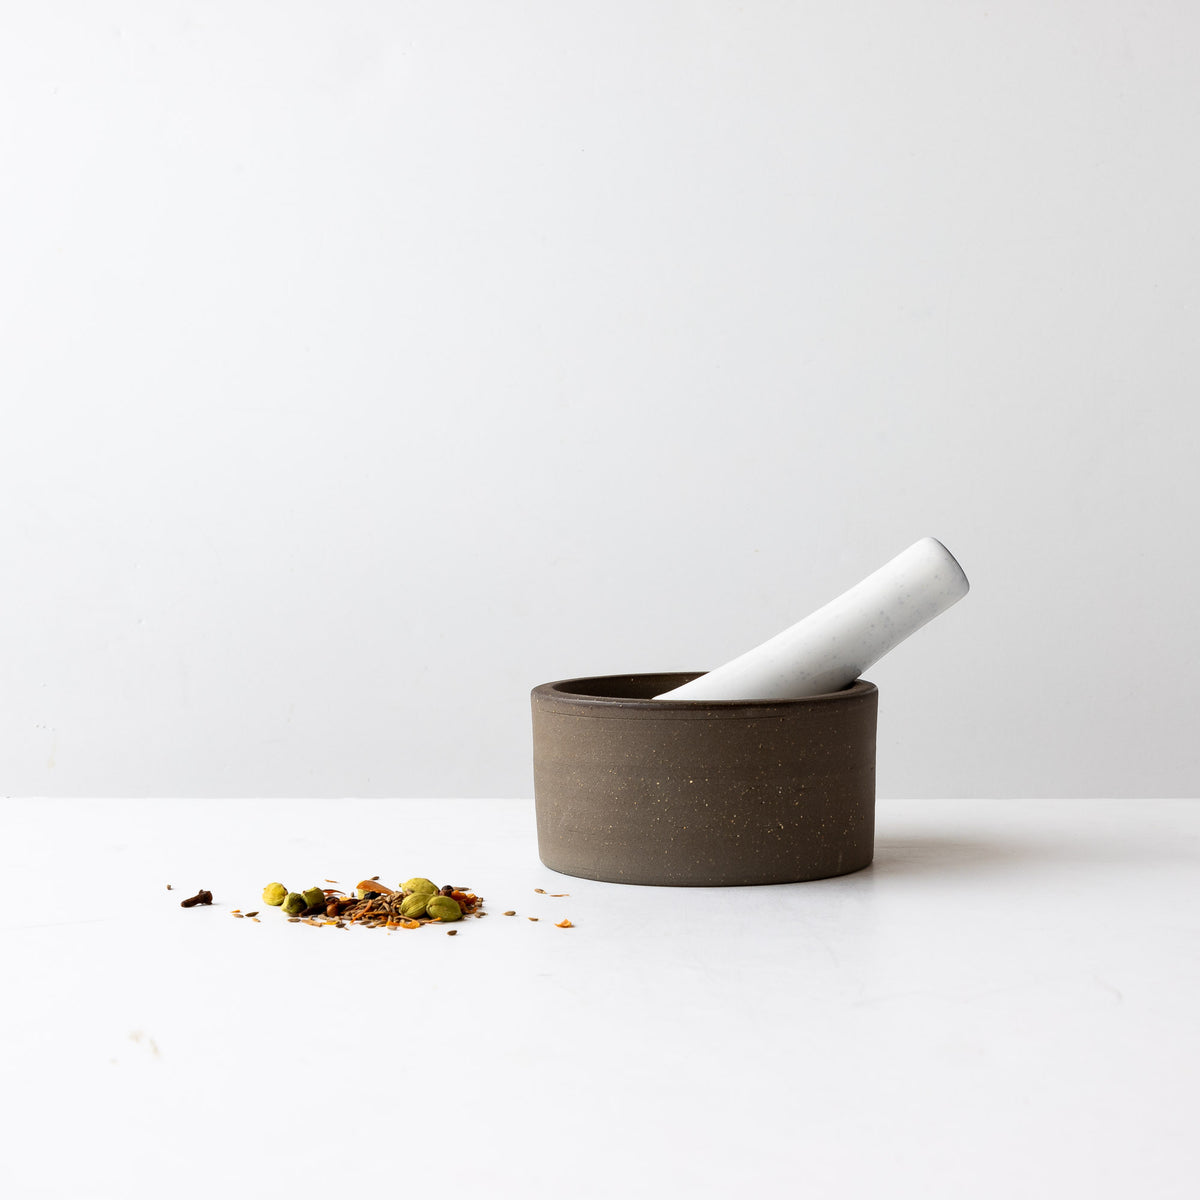 Handmade Contemporary Ceramic Mortar & Pestle Set - Sold by Chic & Basta